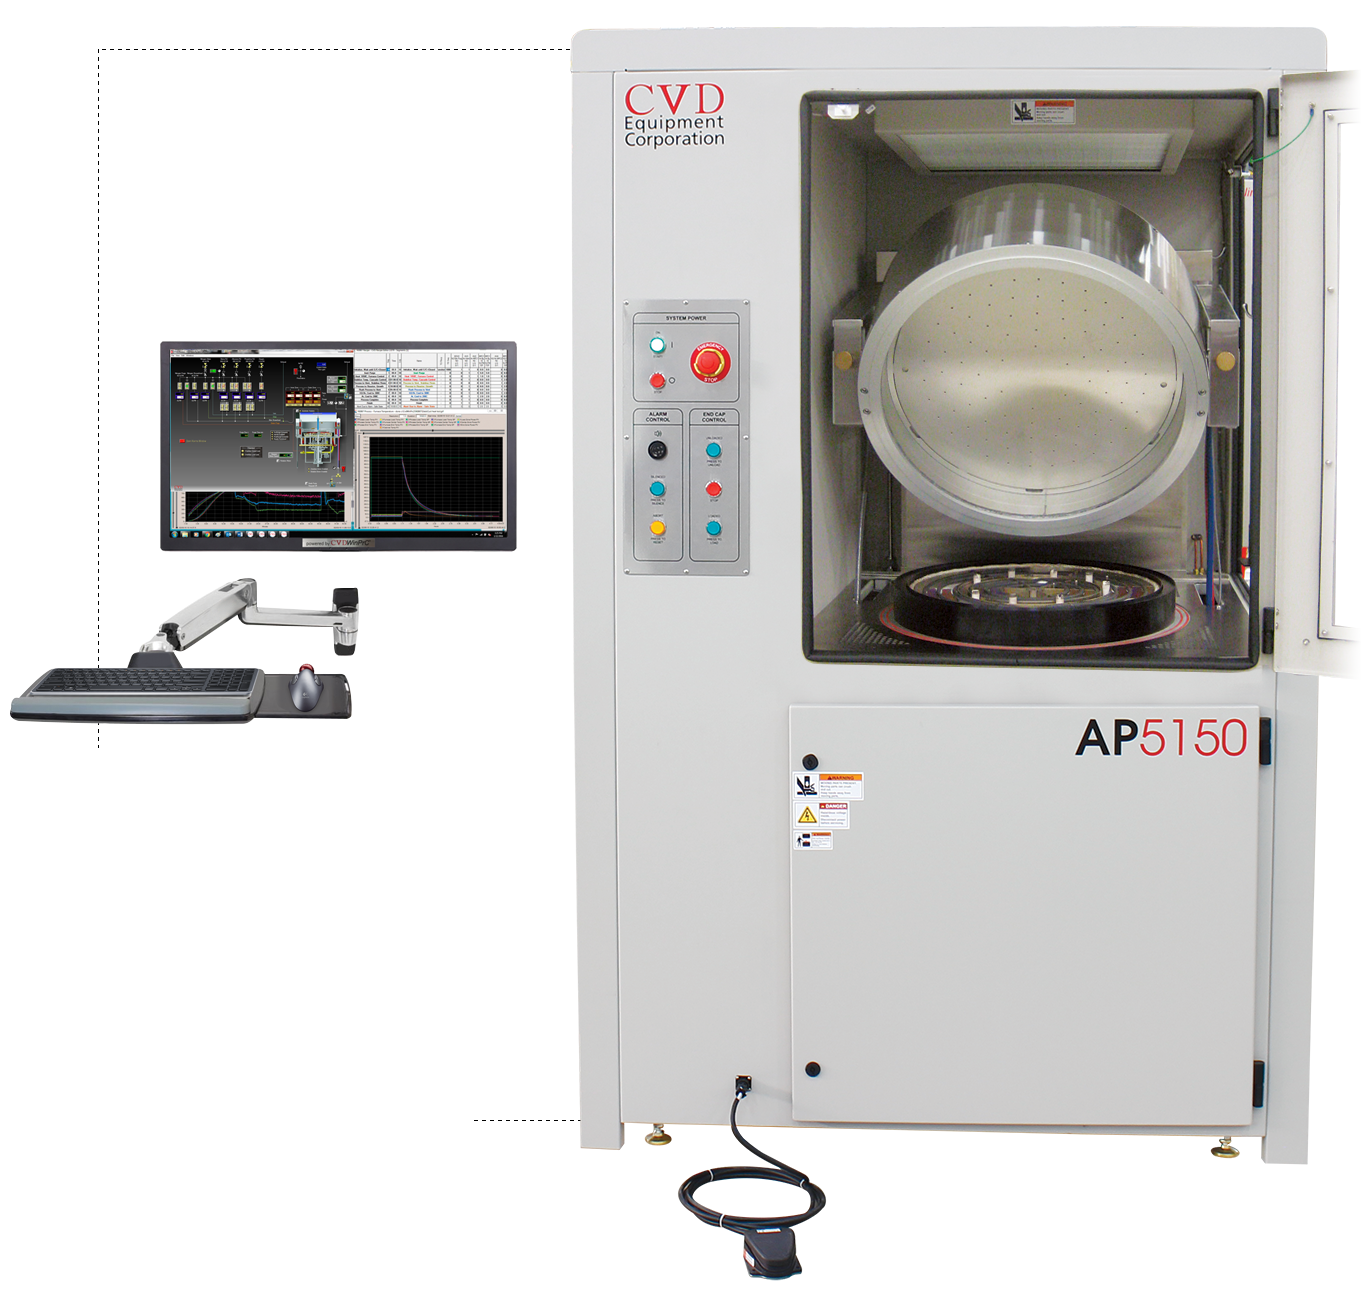 CVD Equipment for R&D and Production Processing